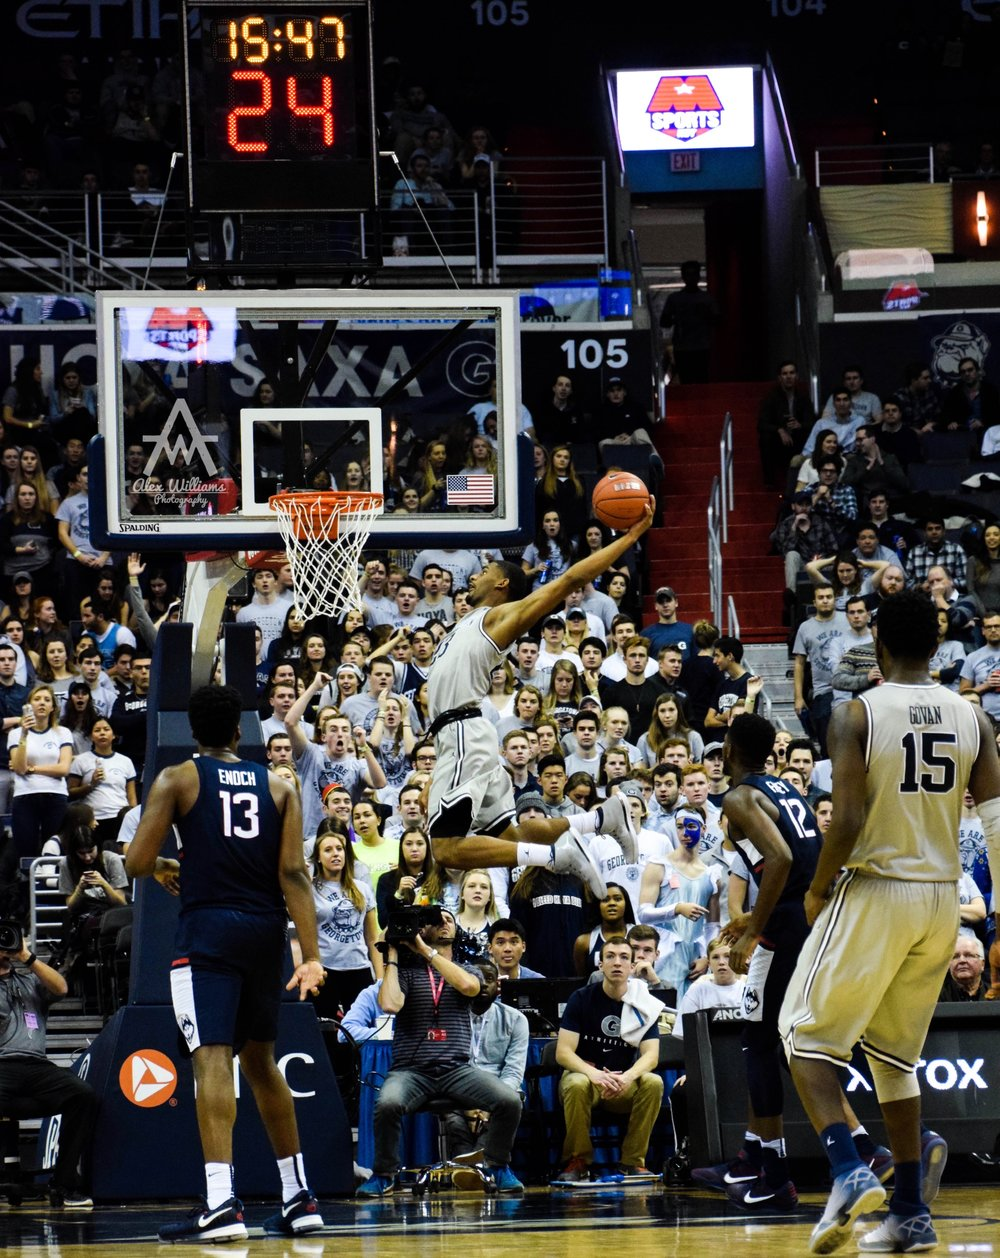 Georgetown vs UConn (Jan 2017)